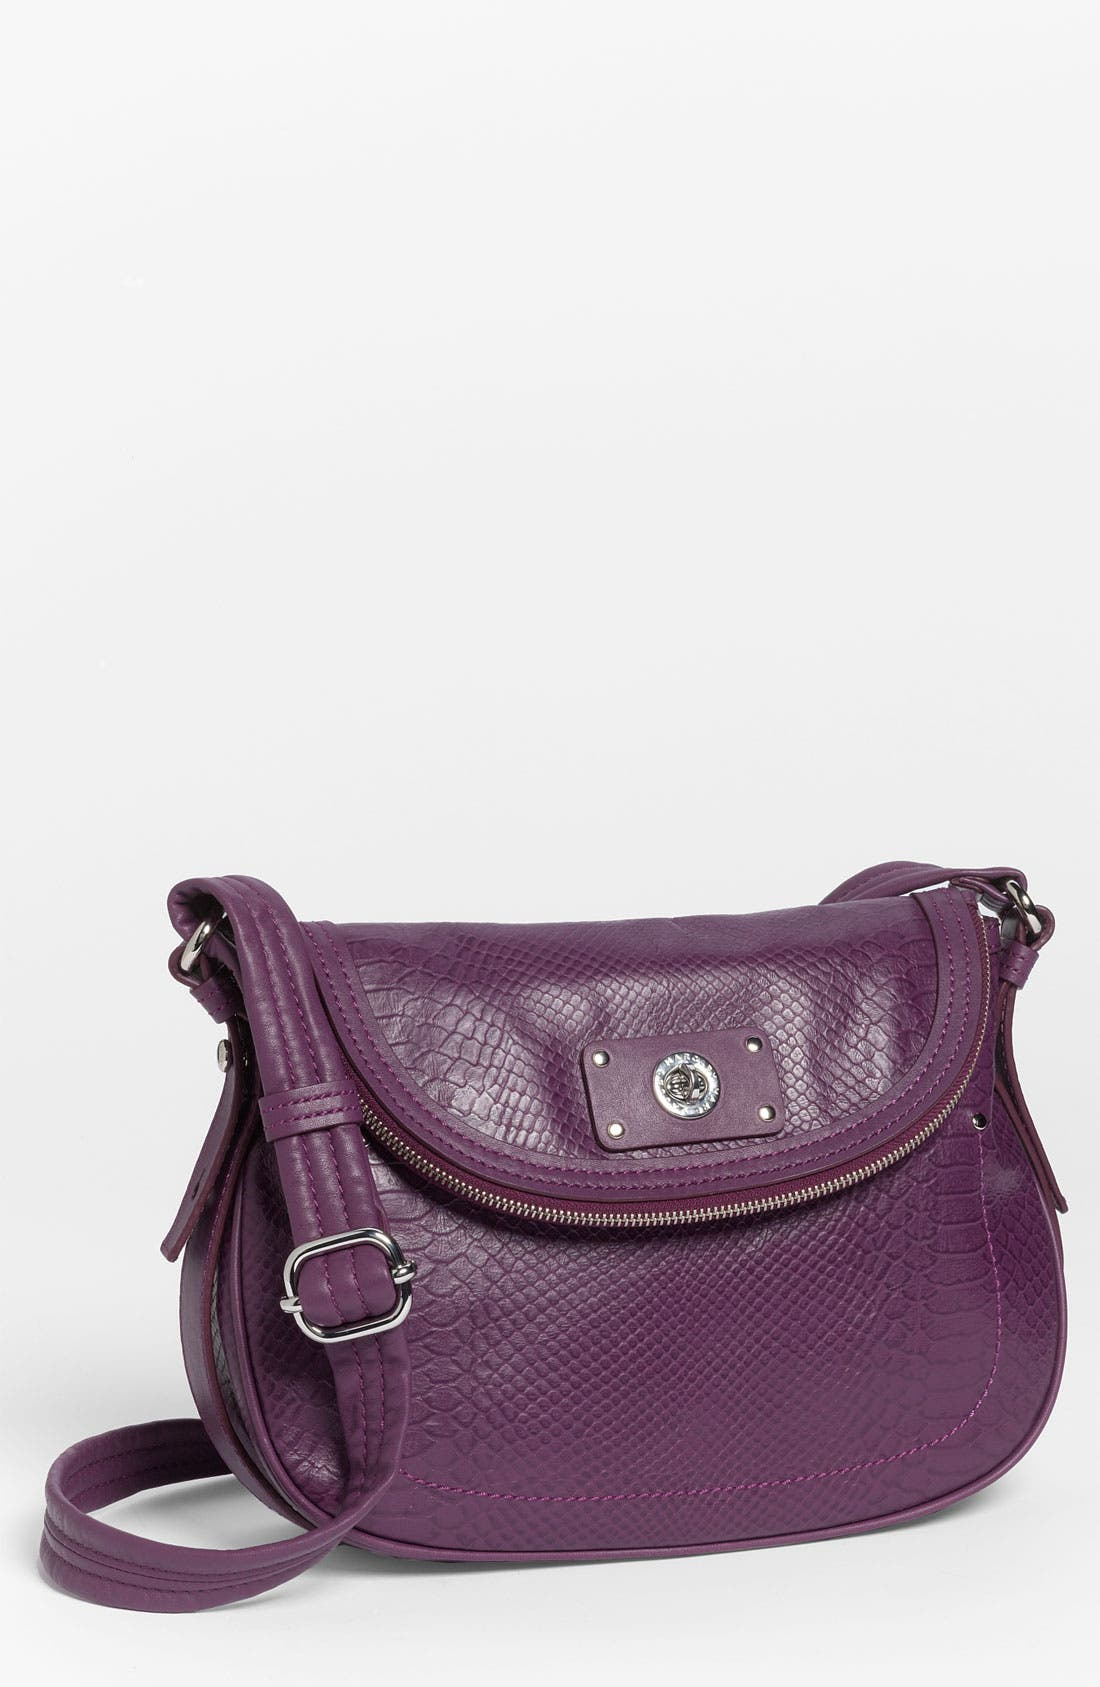 Main Image - MARC BY MARC JACOBS 'Totally Turnlock - Natasha' Python Embossed Crossbody Bag